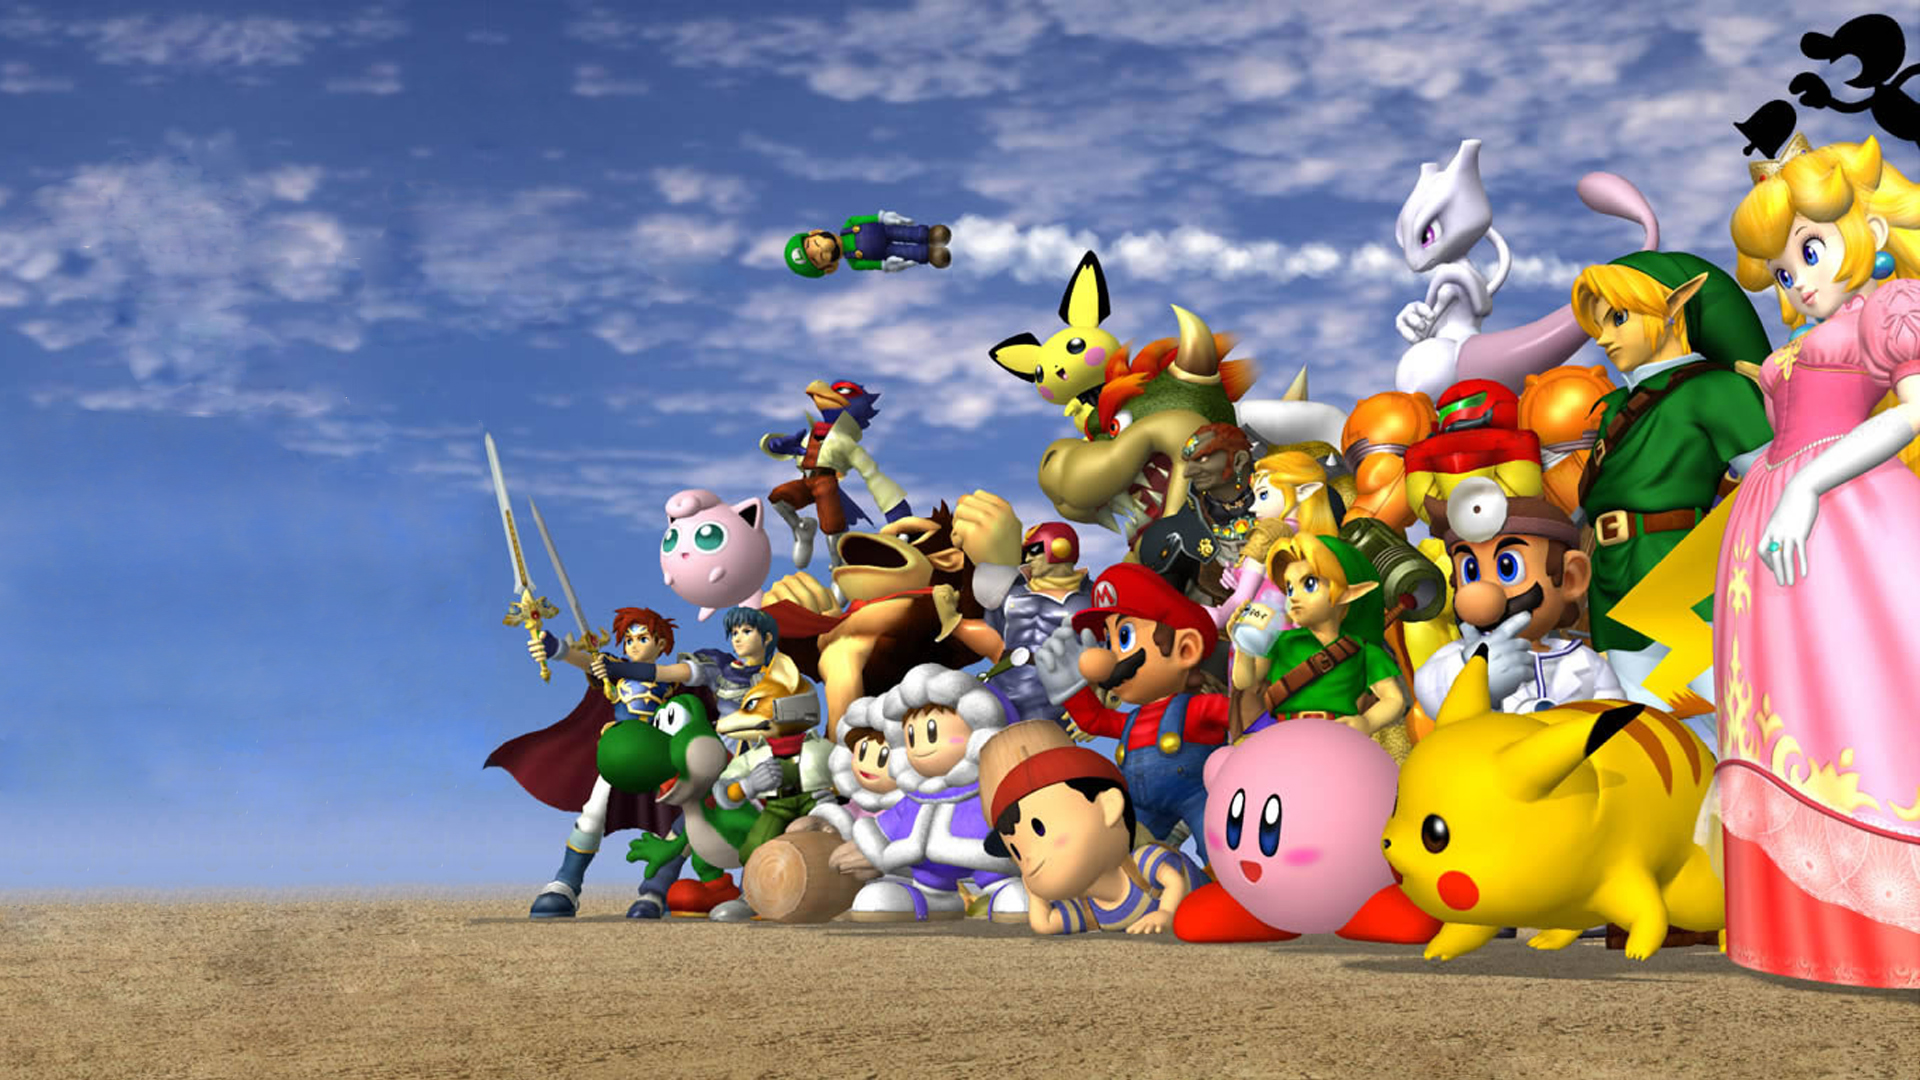 Nintendo Game Characters Res: 1920x1080 HD / Size:1174kb. Views: 64121